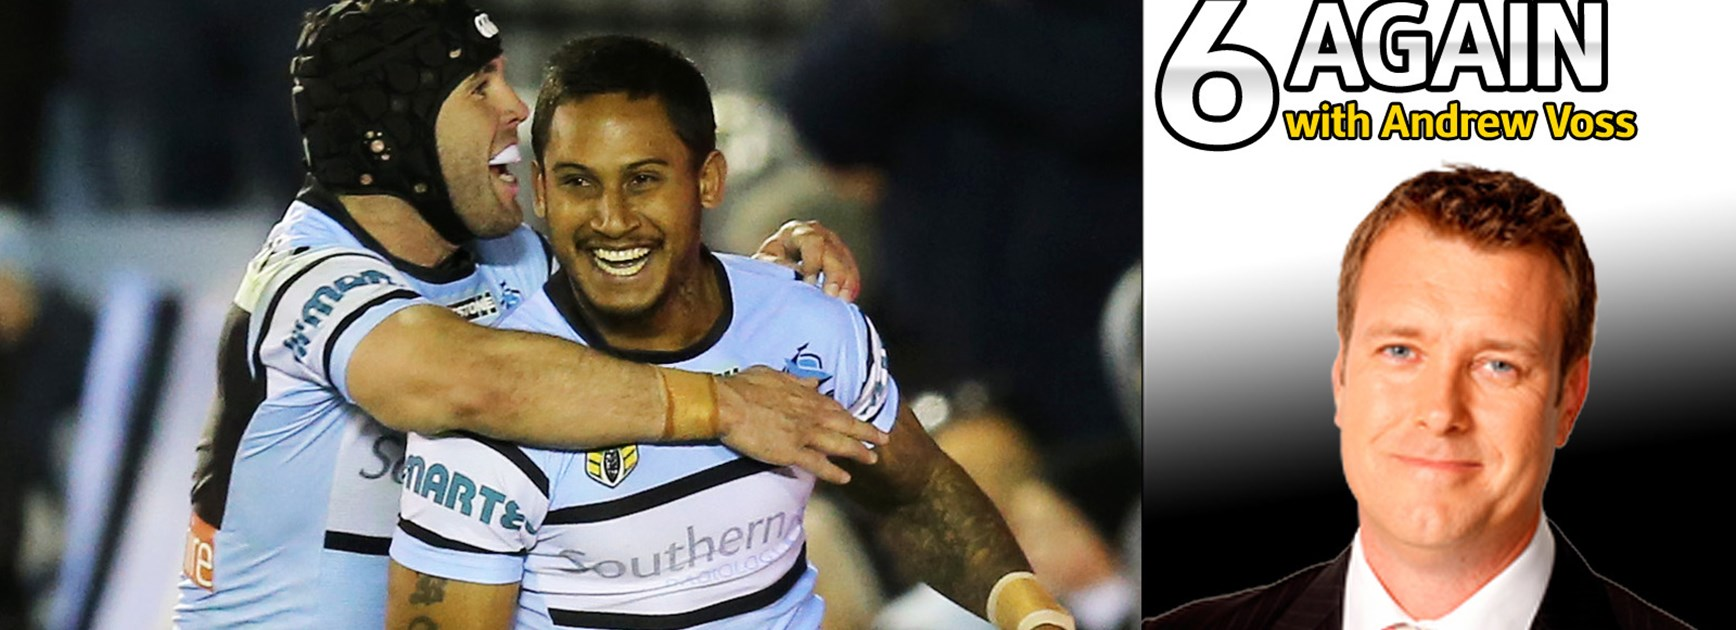 Where to next for Ben Barba, asks Andrew Voss.